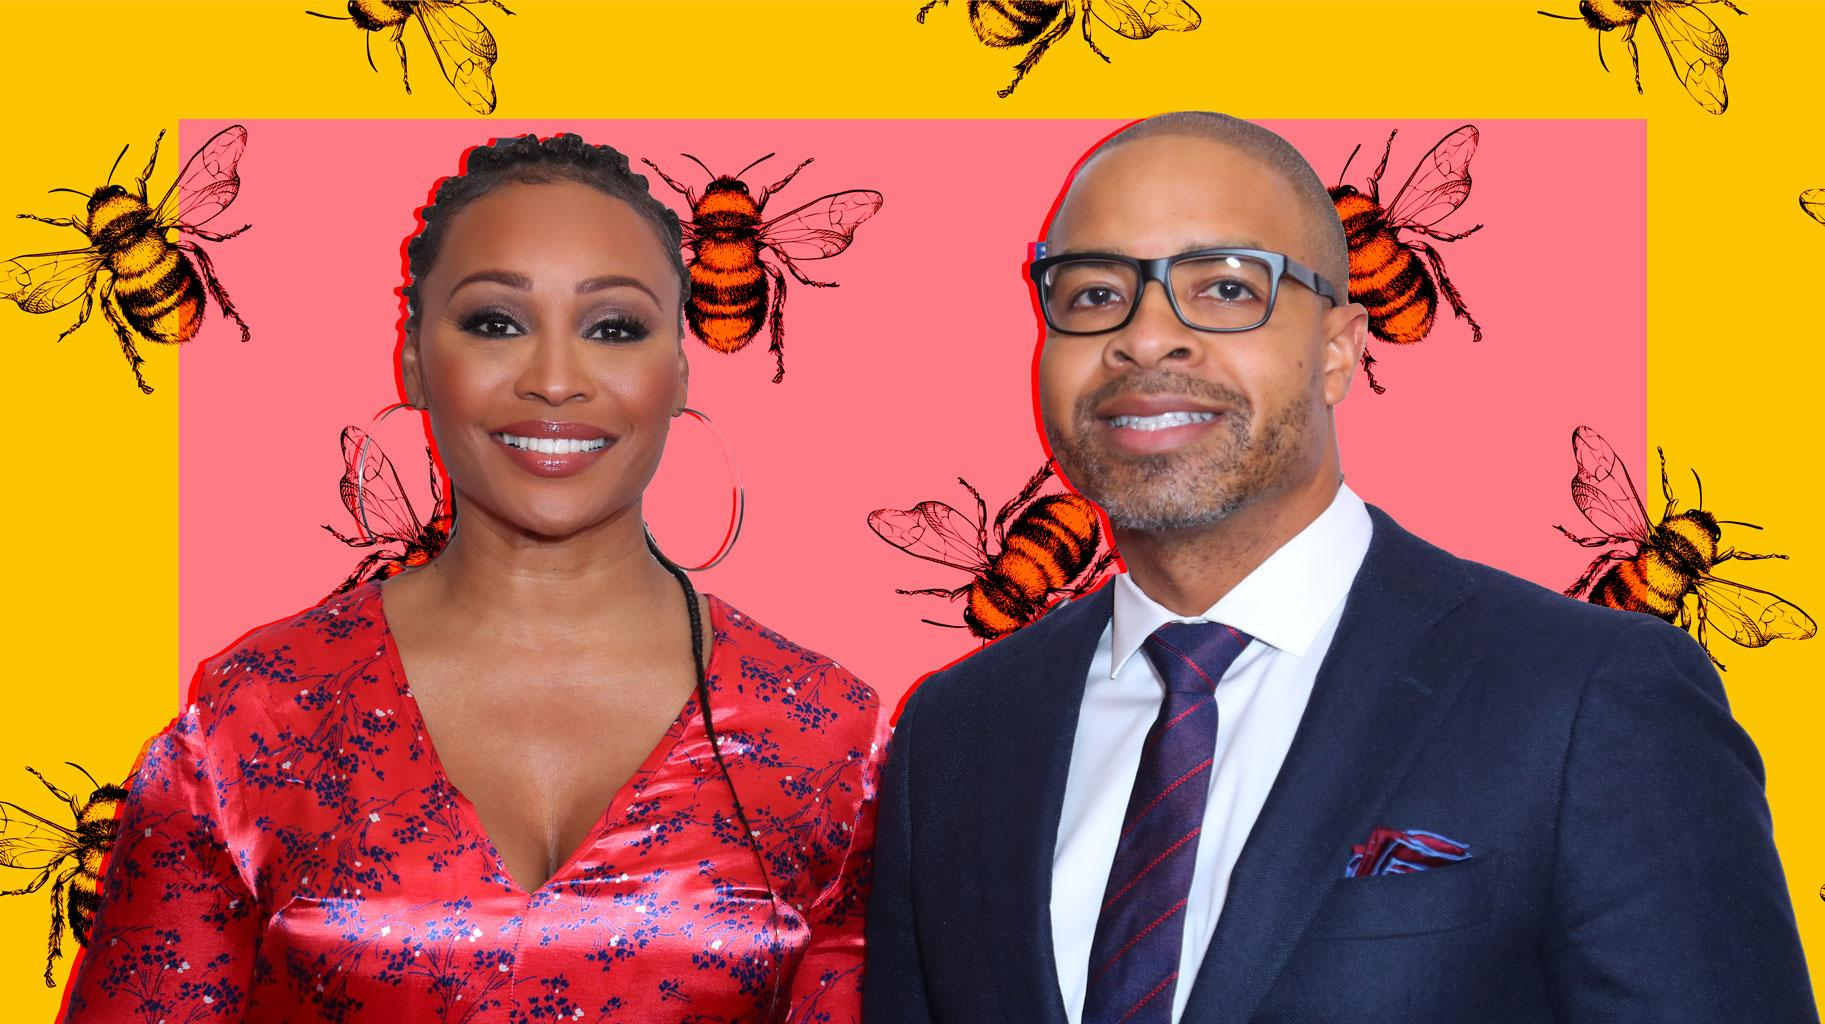 Cynthia Bailey's Latest Photos With Mike Hill Have Fans Talking About Her Wedding Dress